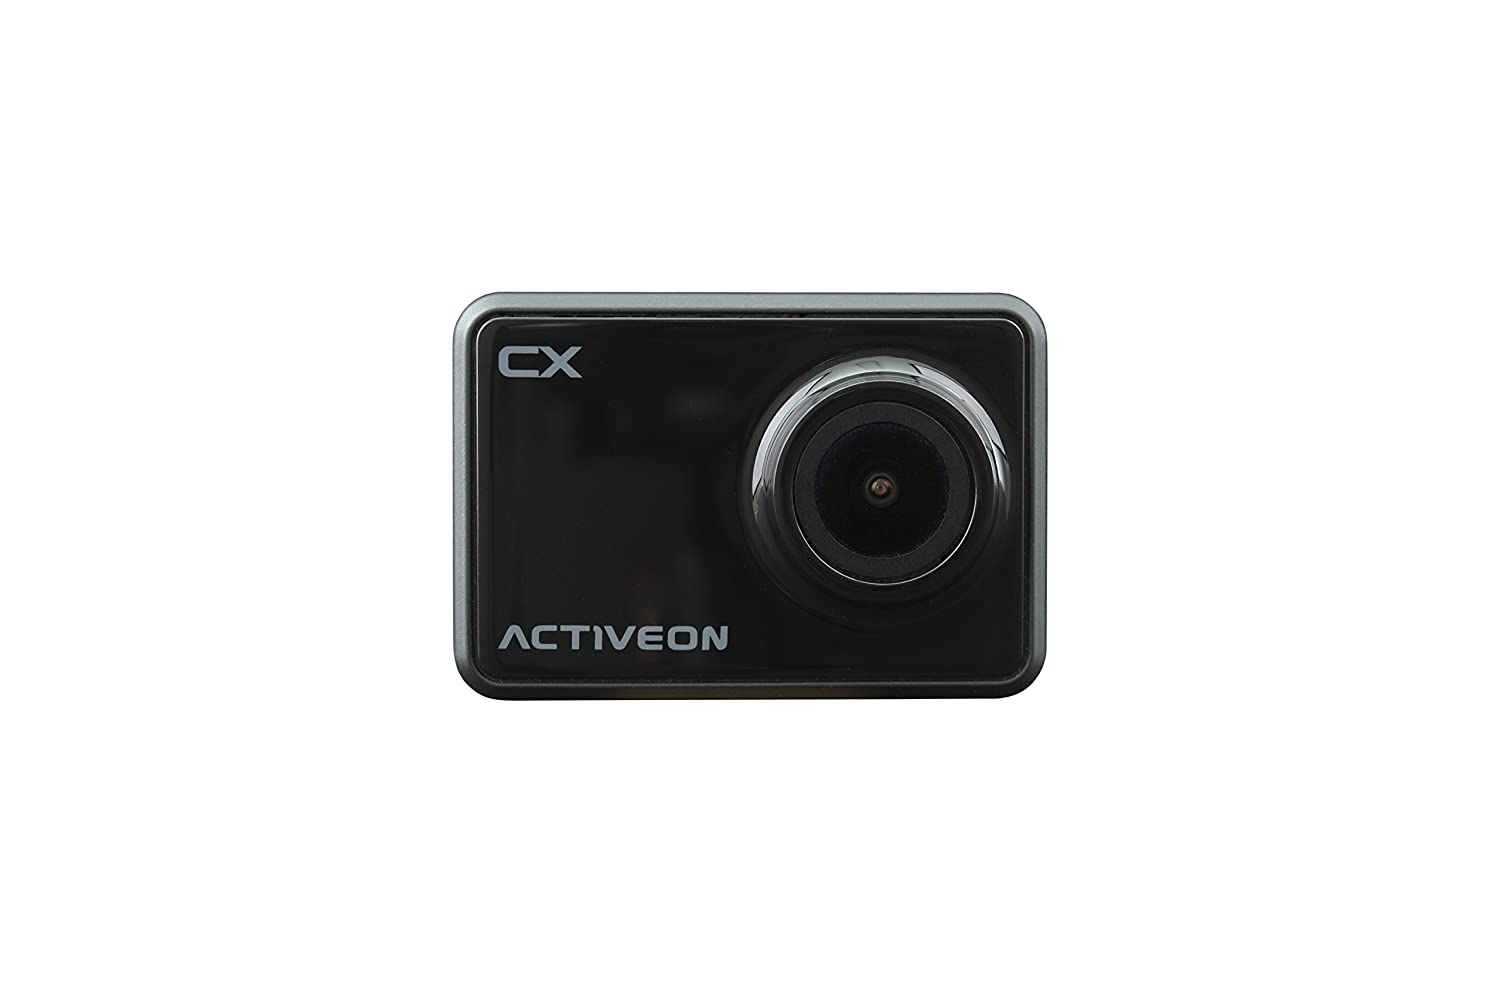 Activeon CX Action Camera (Onyx Black)